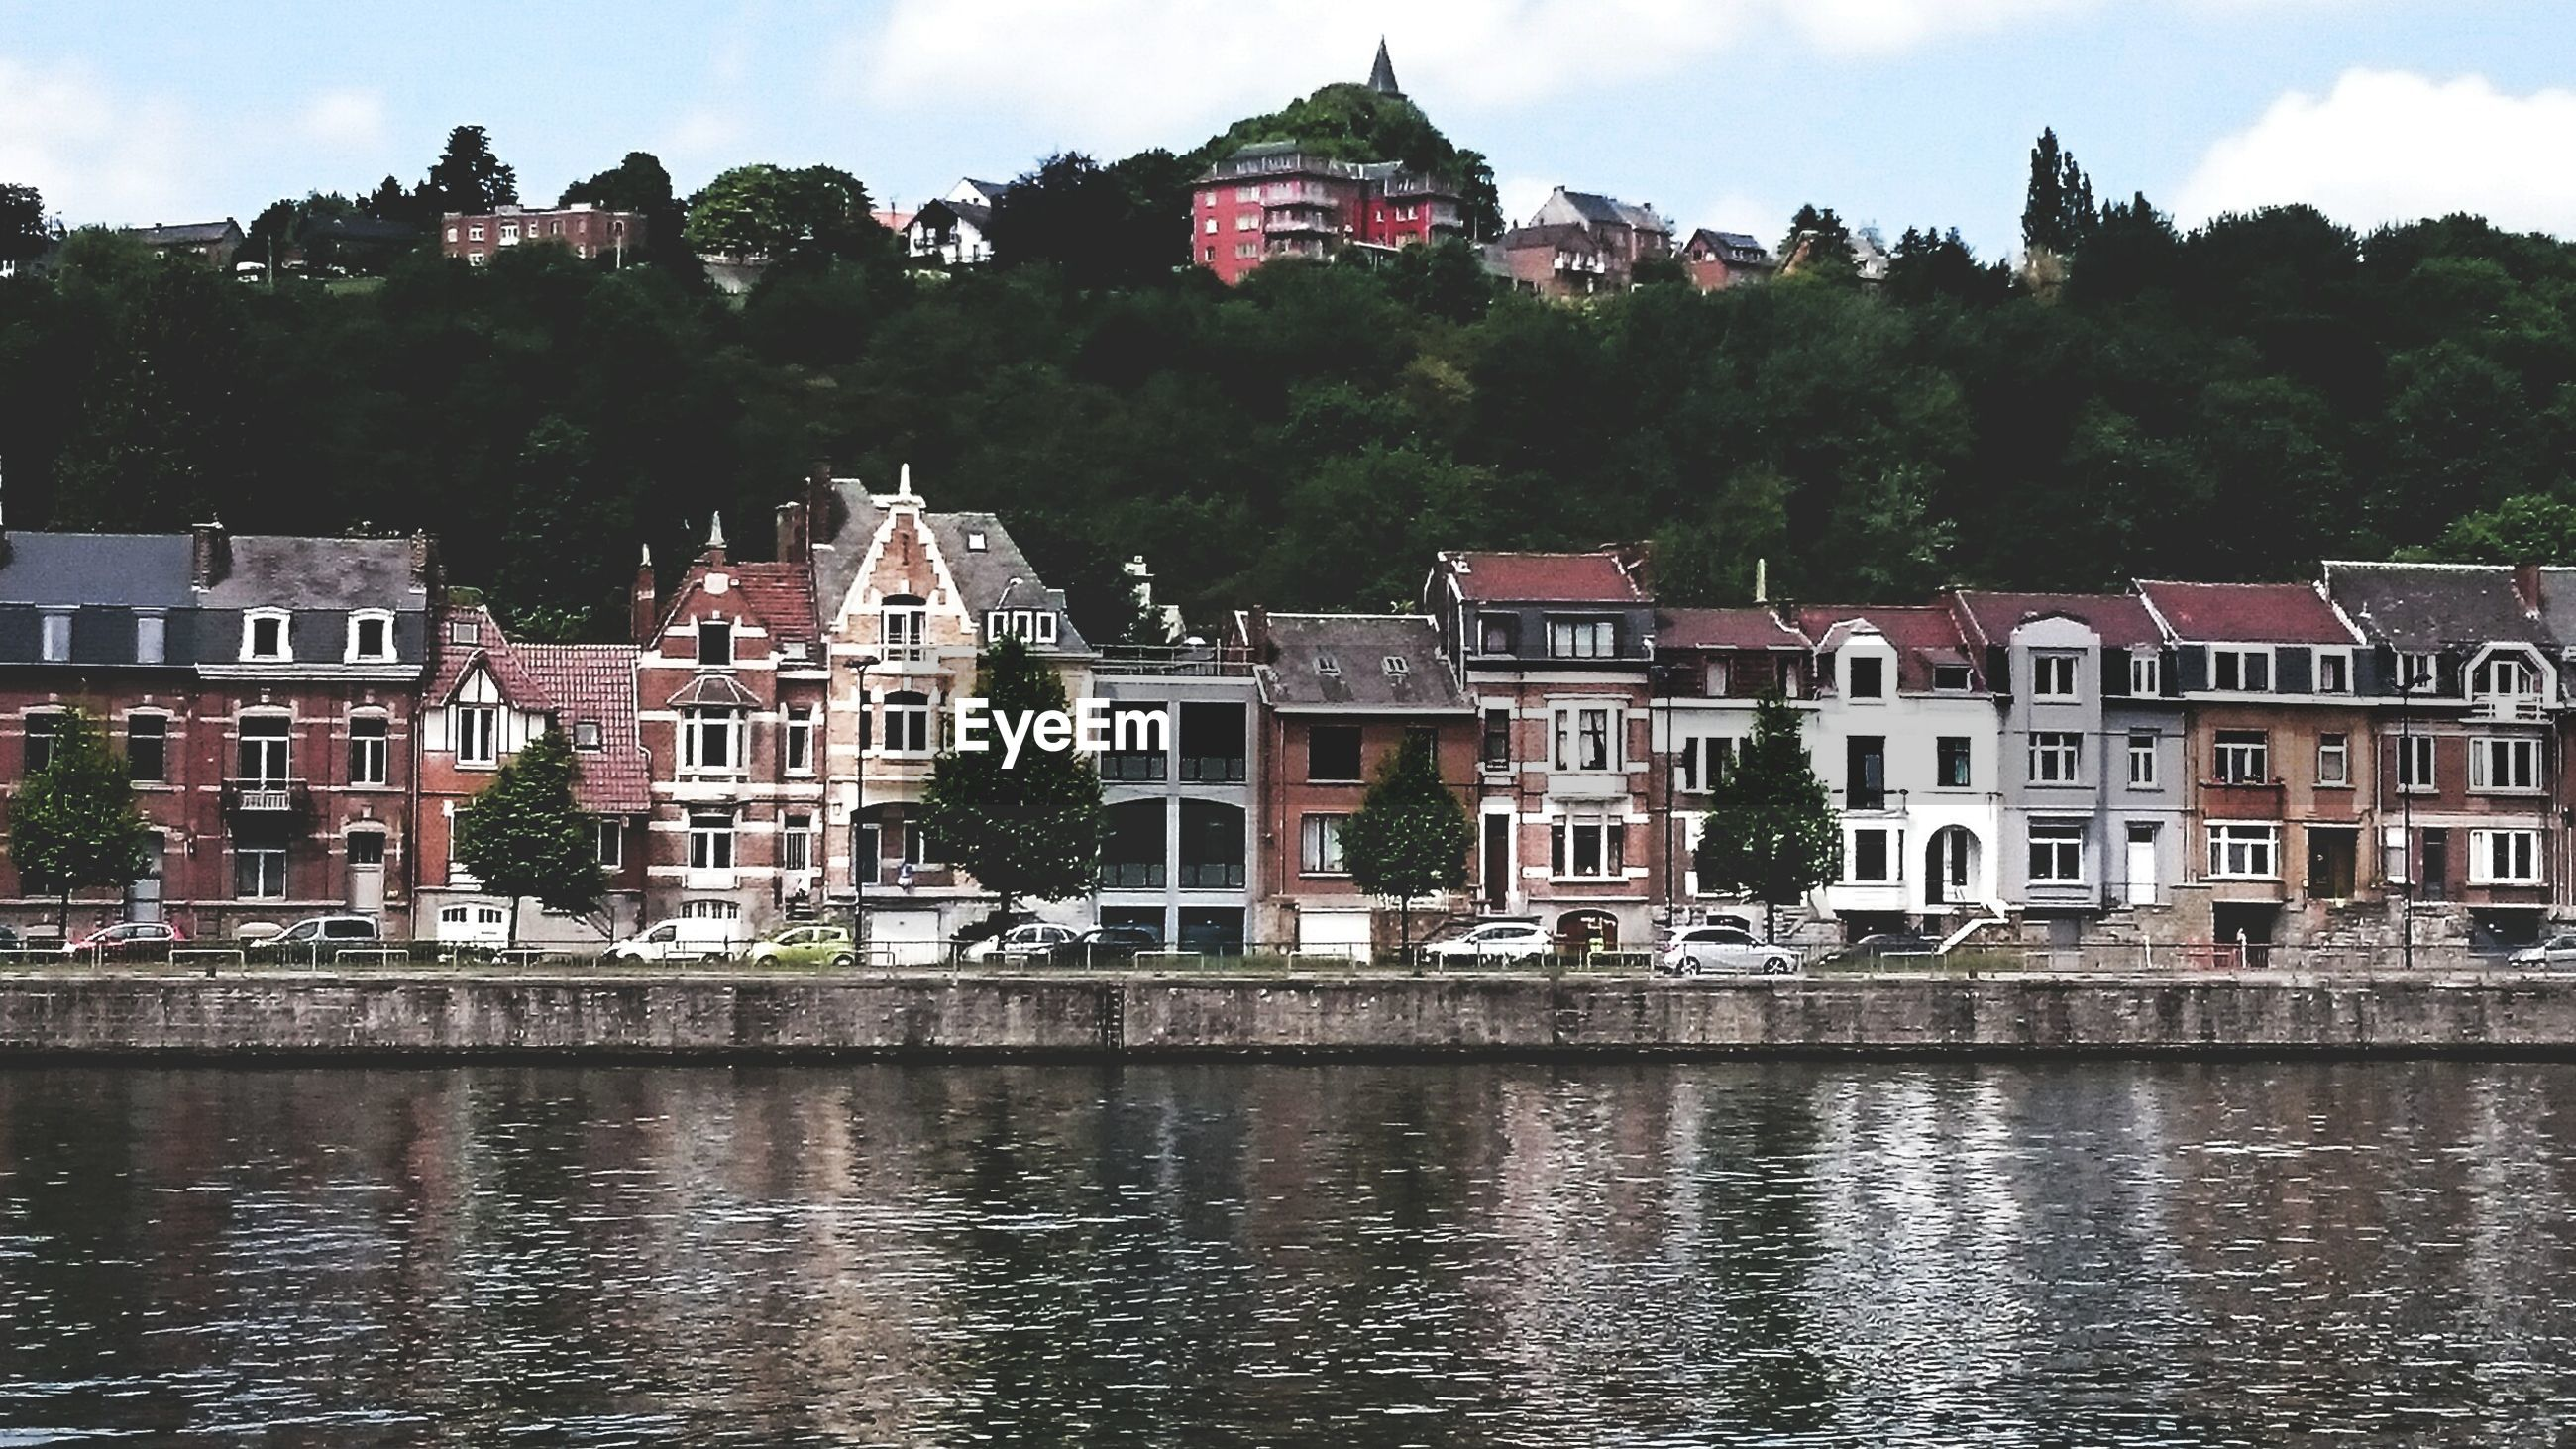 building exterior, architecture, built structure, water, waterfront, reflection, sky, tree, river, house, residential building, residential structure, canal, rippled, lake, building, city, day, outdoors, town